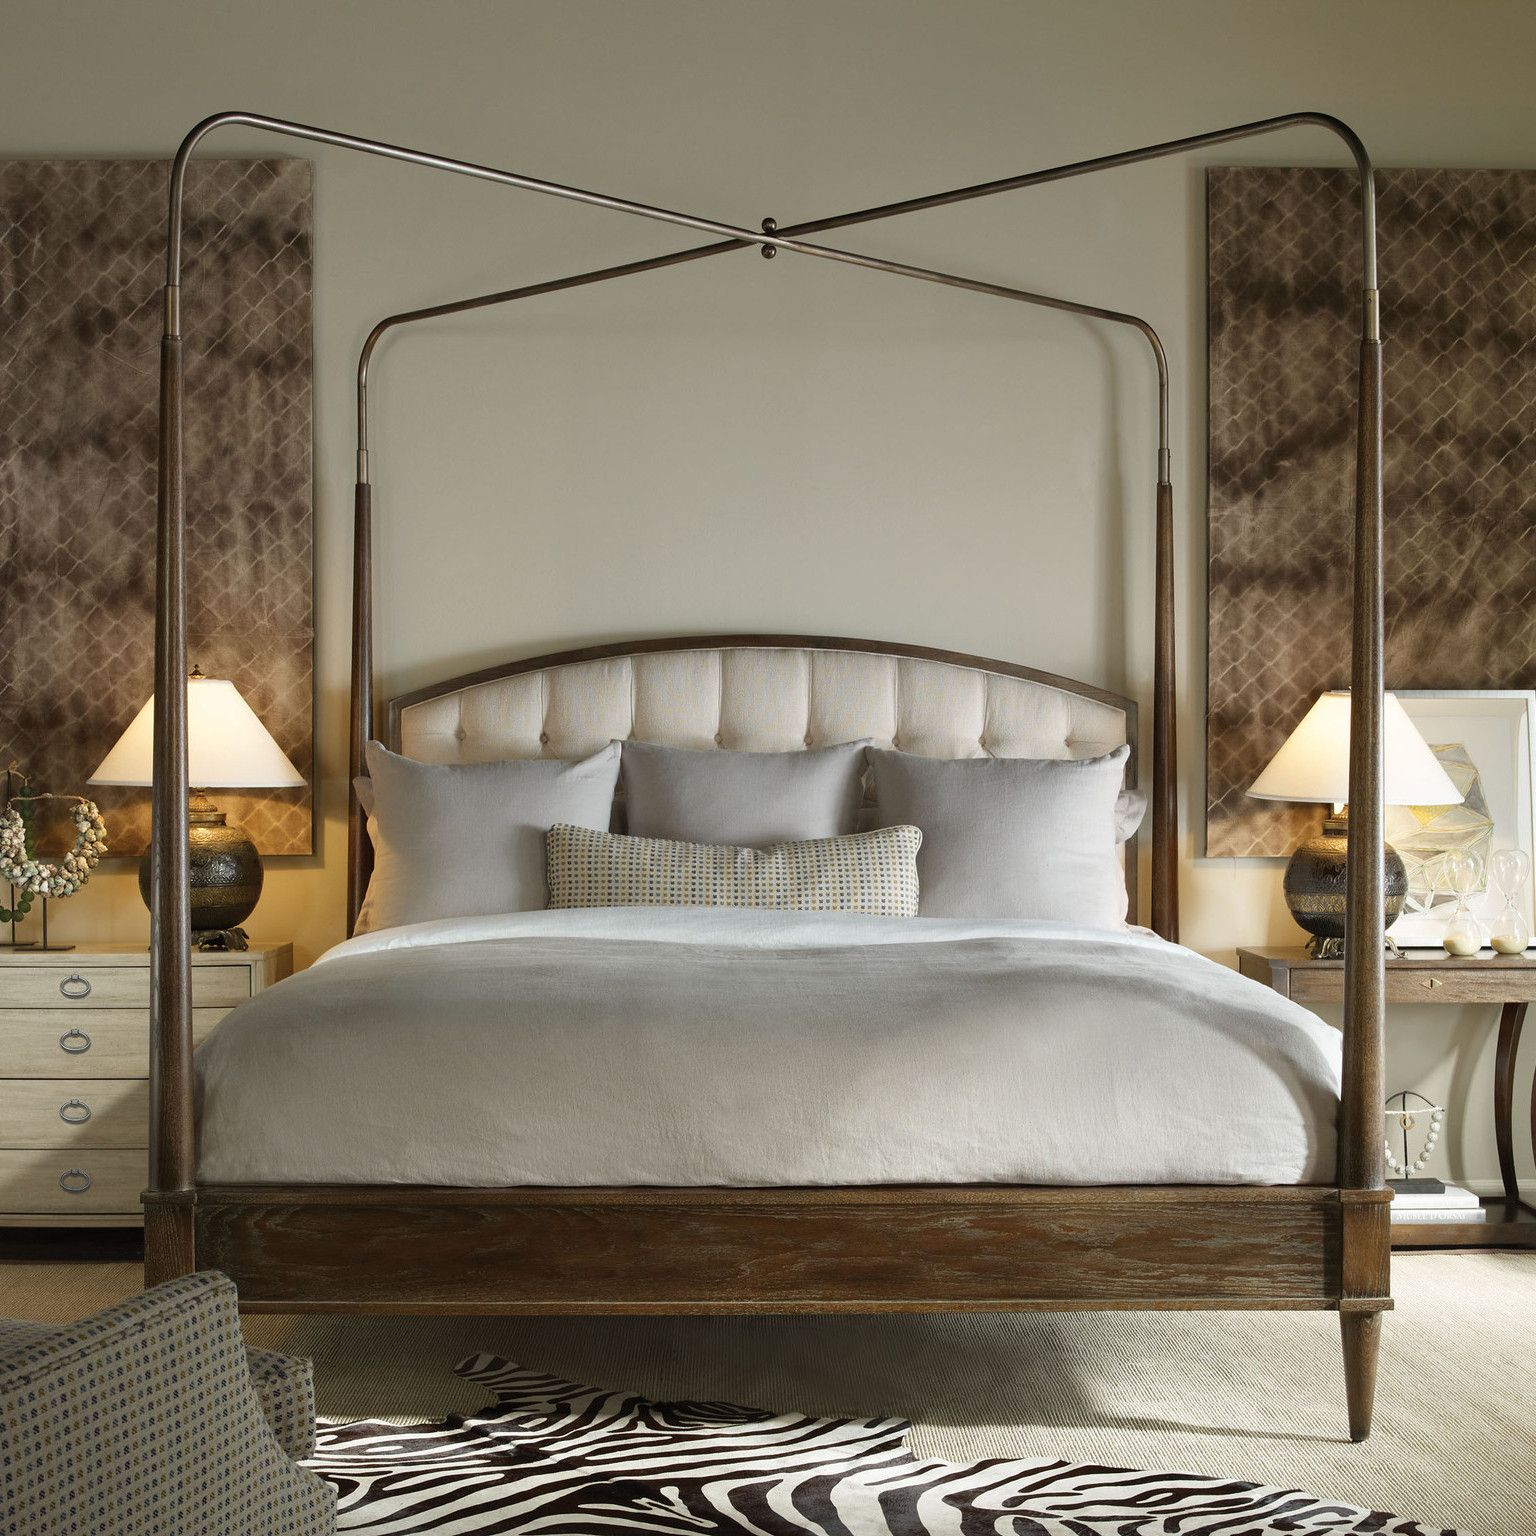 Anderkit tufted headboard bed tufted headboards bedrooms and oak beds